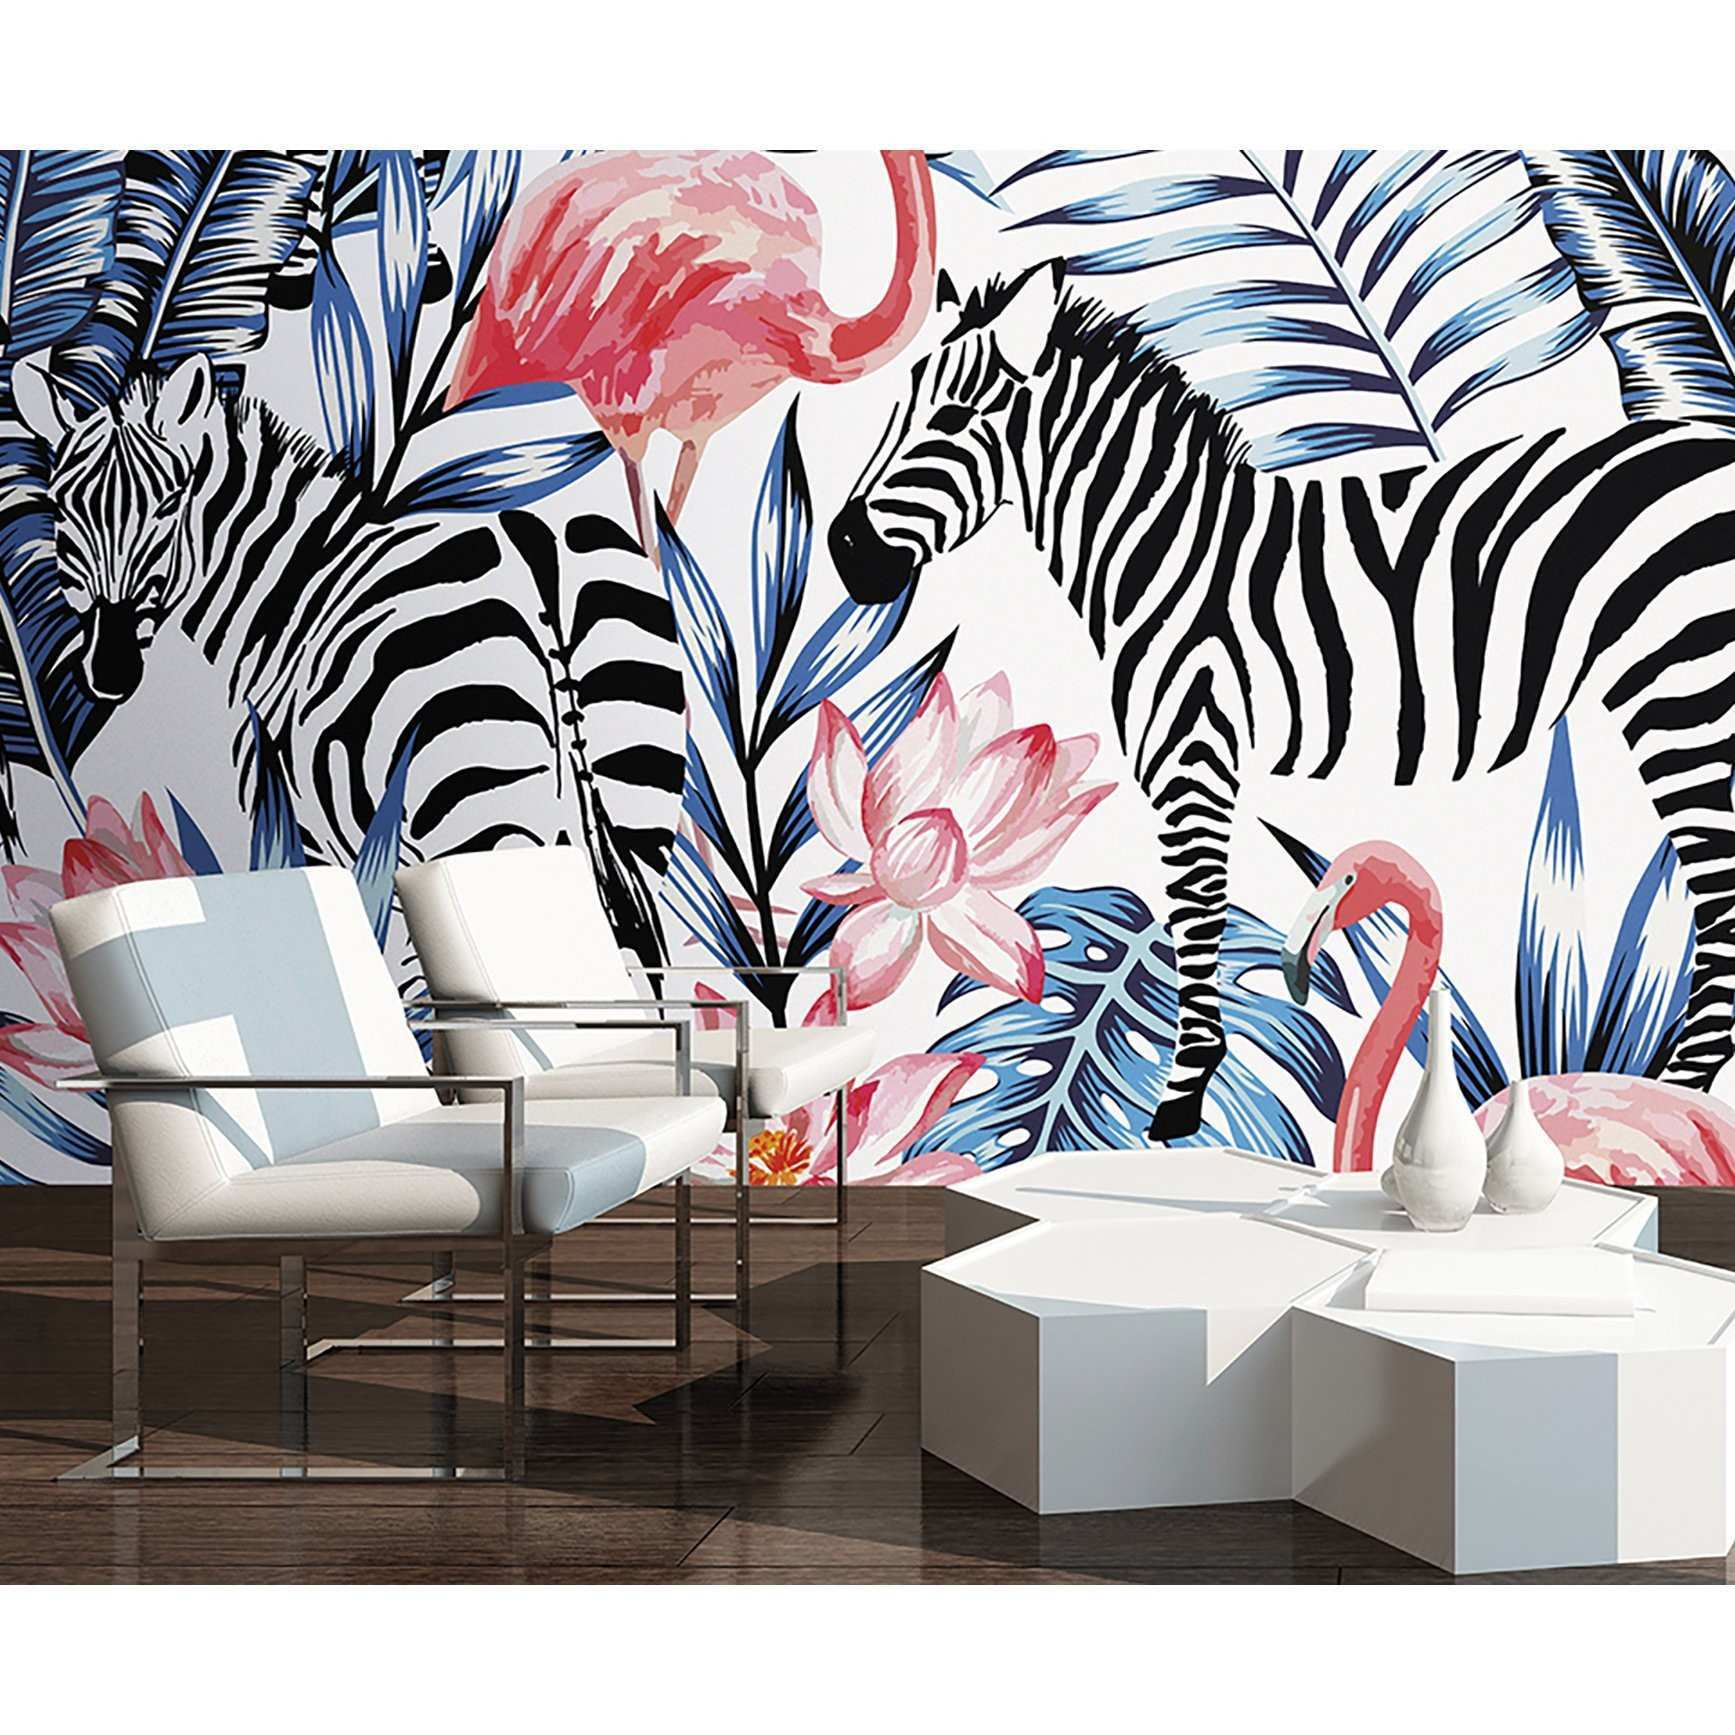 Leopard Print Wallpaper For Walls Brewster Home Fashions Zebra And